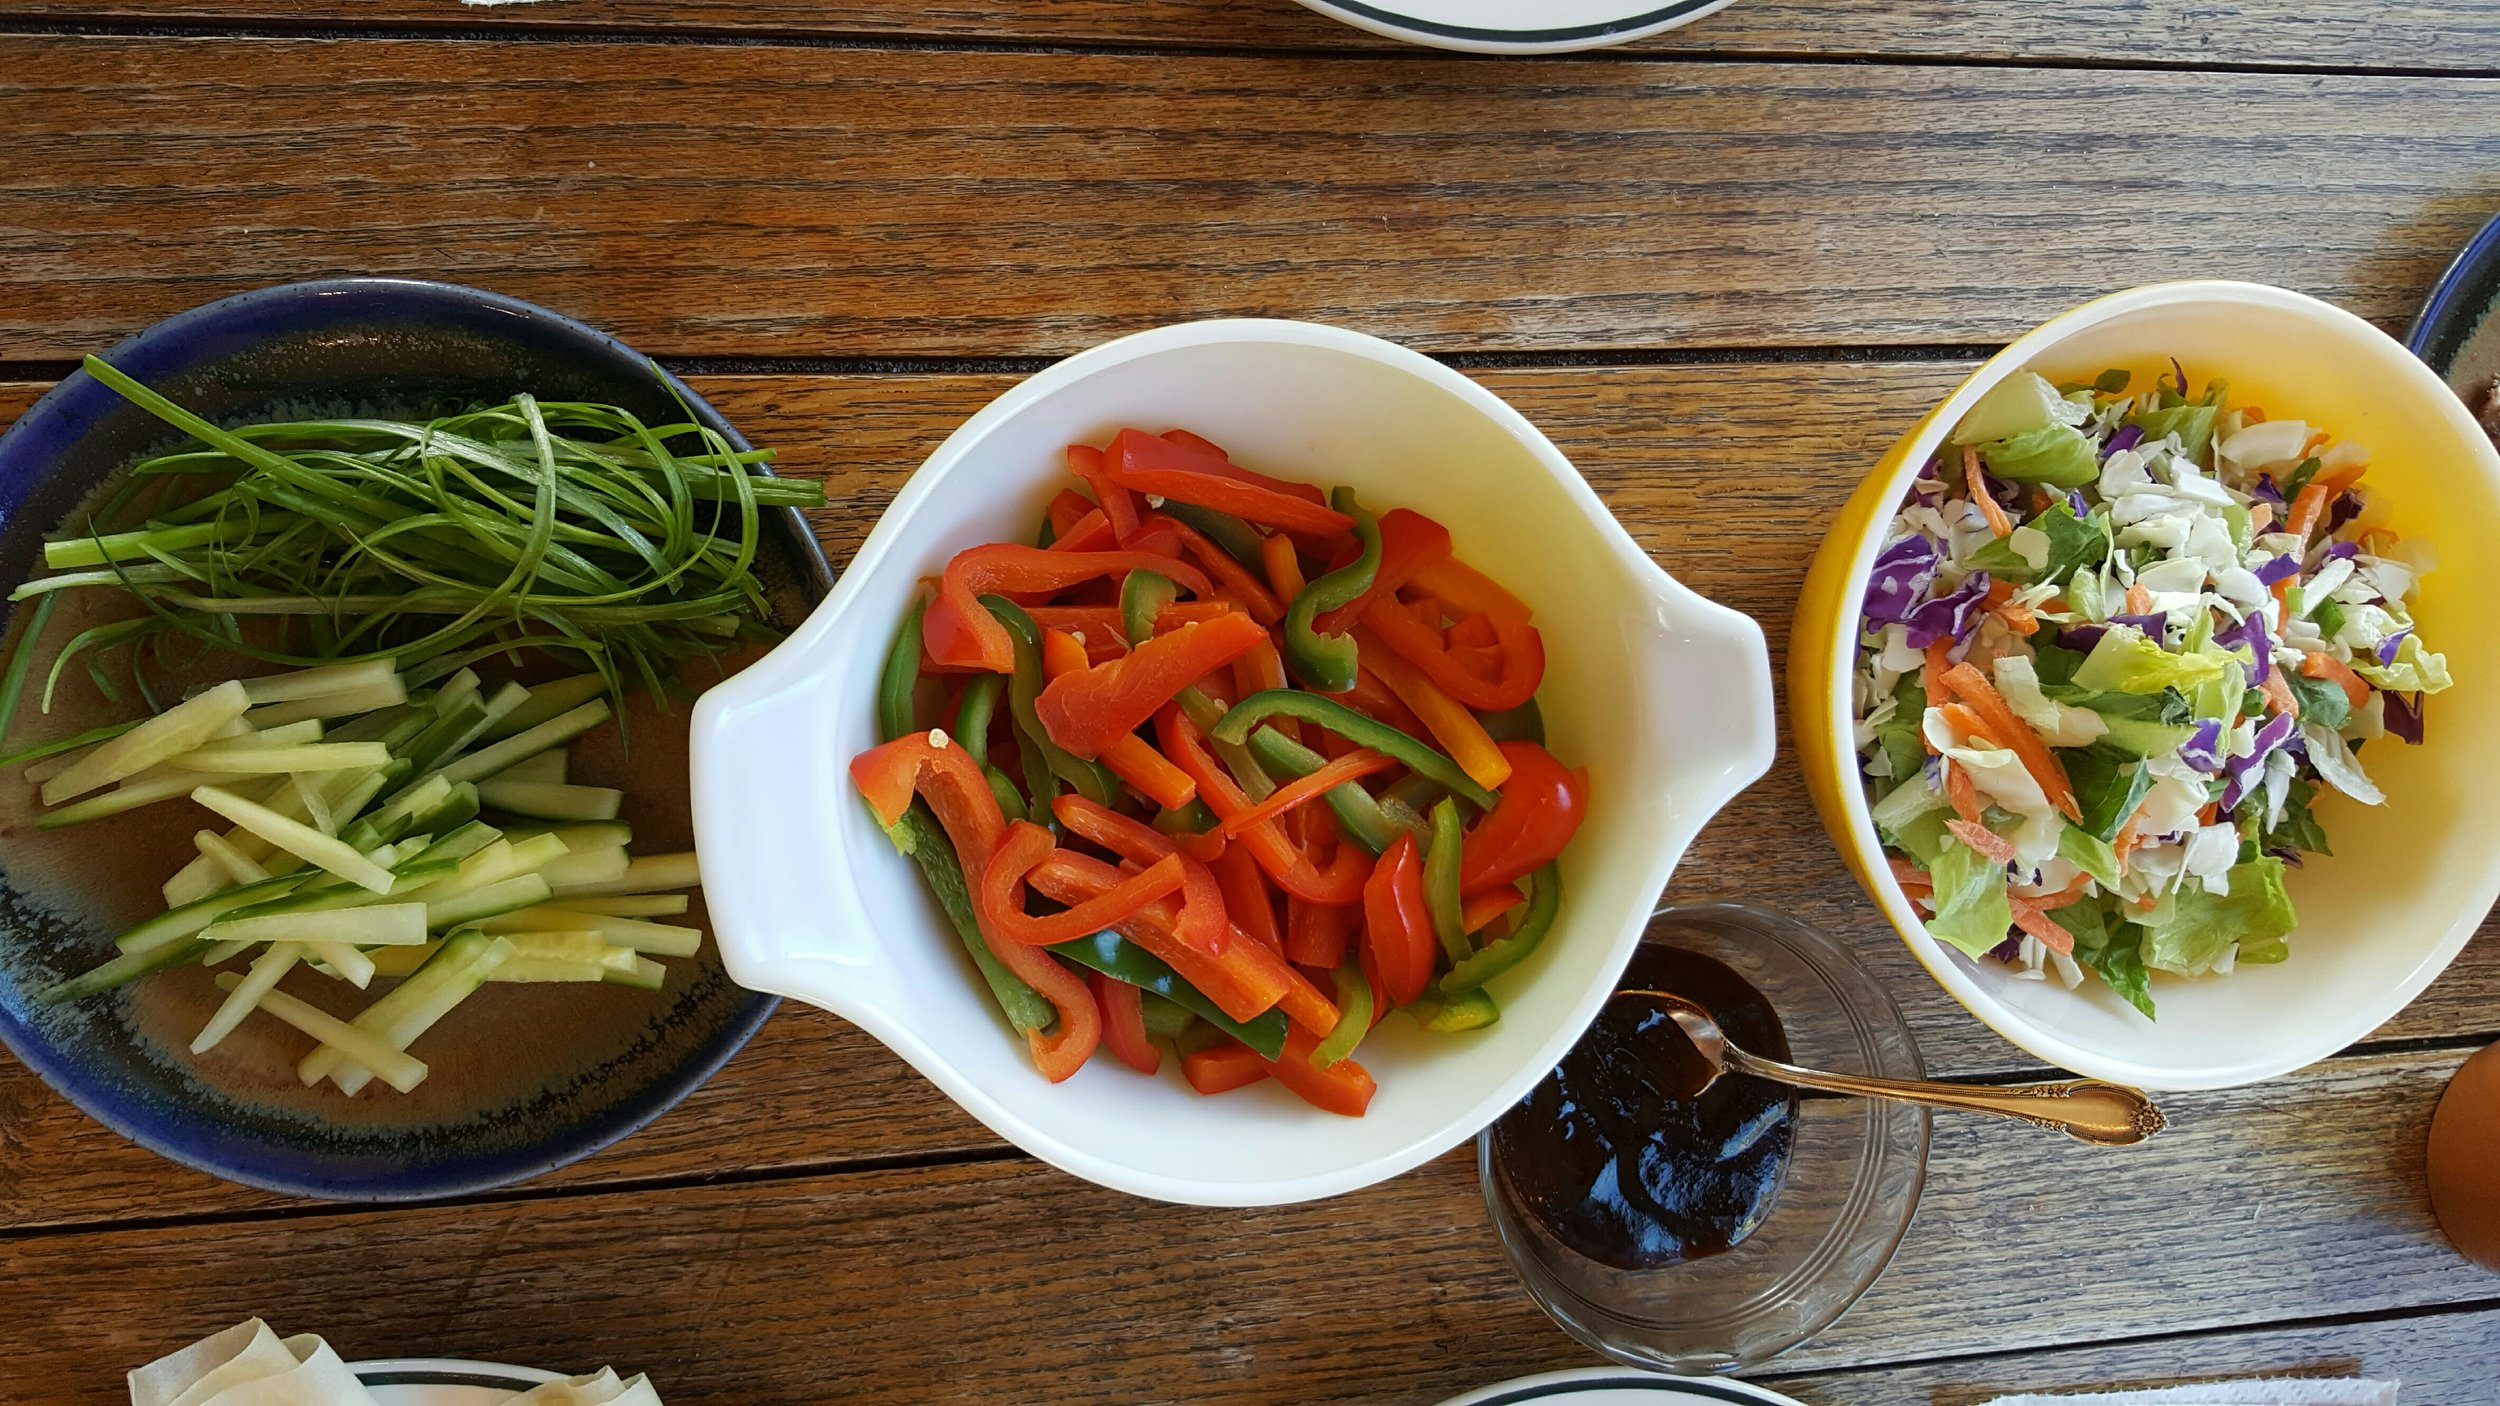 The vibrant colors of the vegetables are what is going in my body. The peppers are sauteed in olive oil and have a sweetness to them.